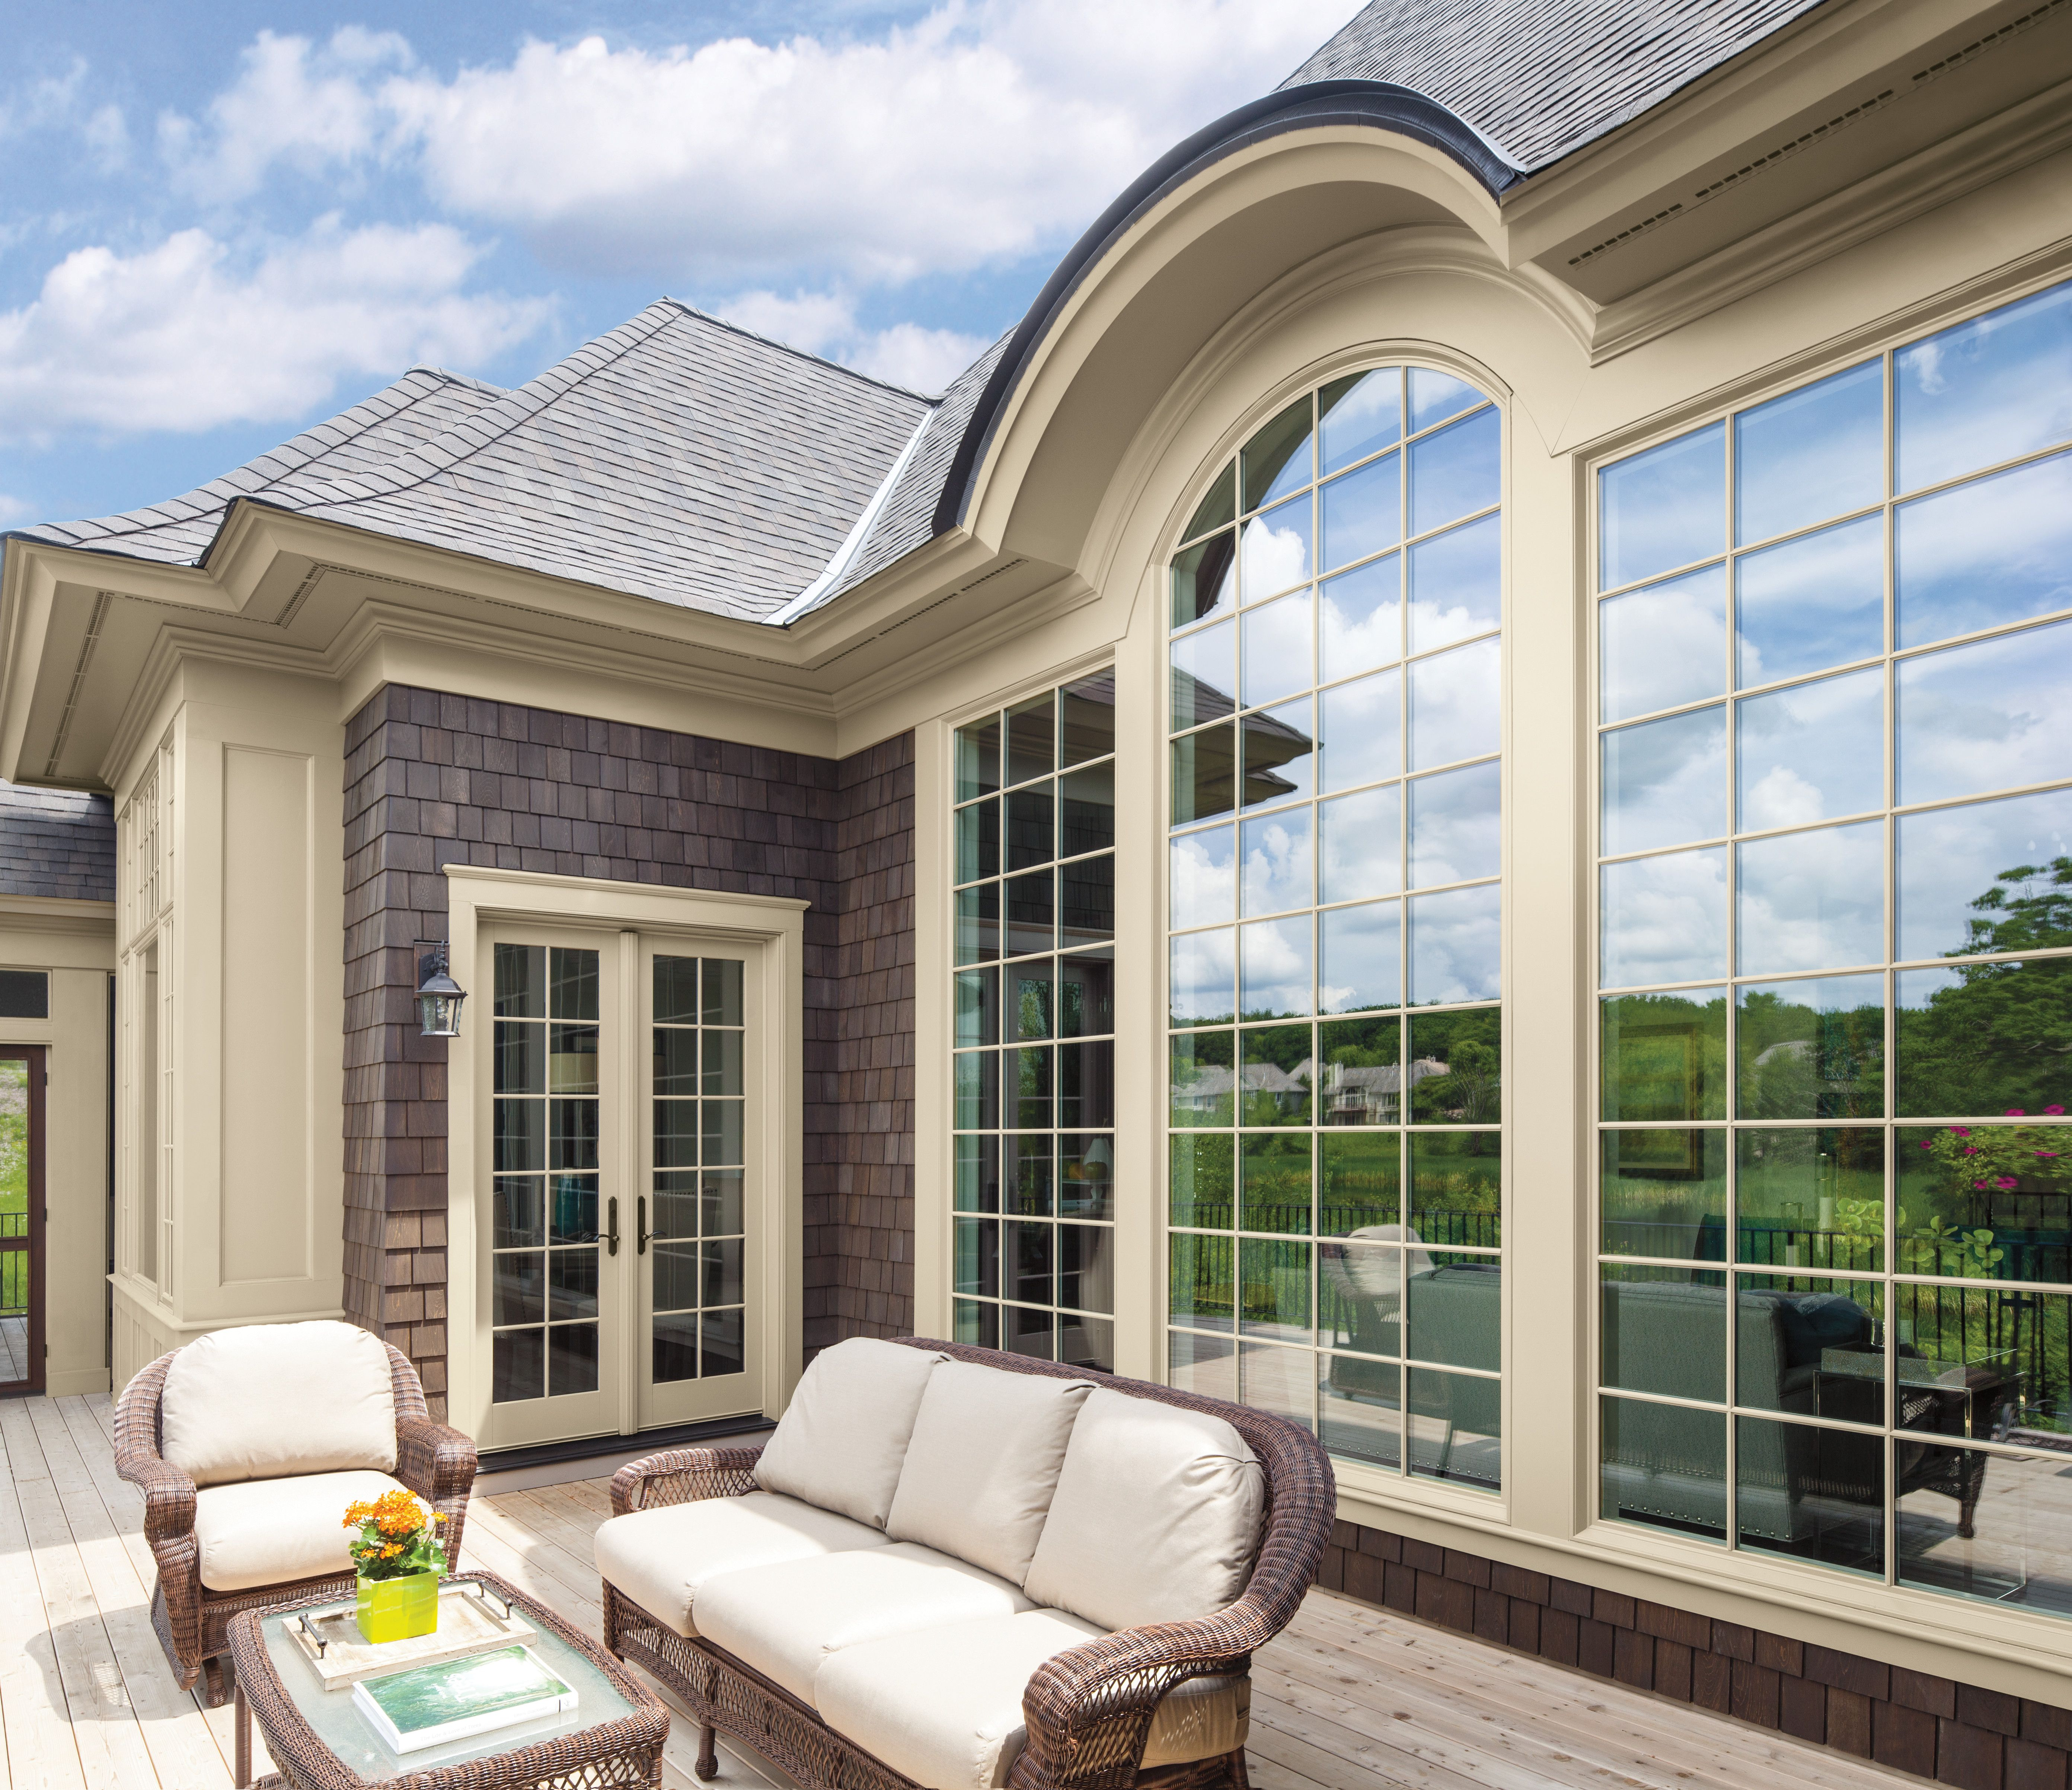 Hinged French doors from Renewal by Andersen provide easy access